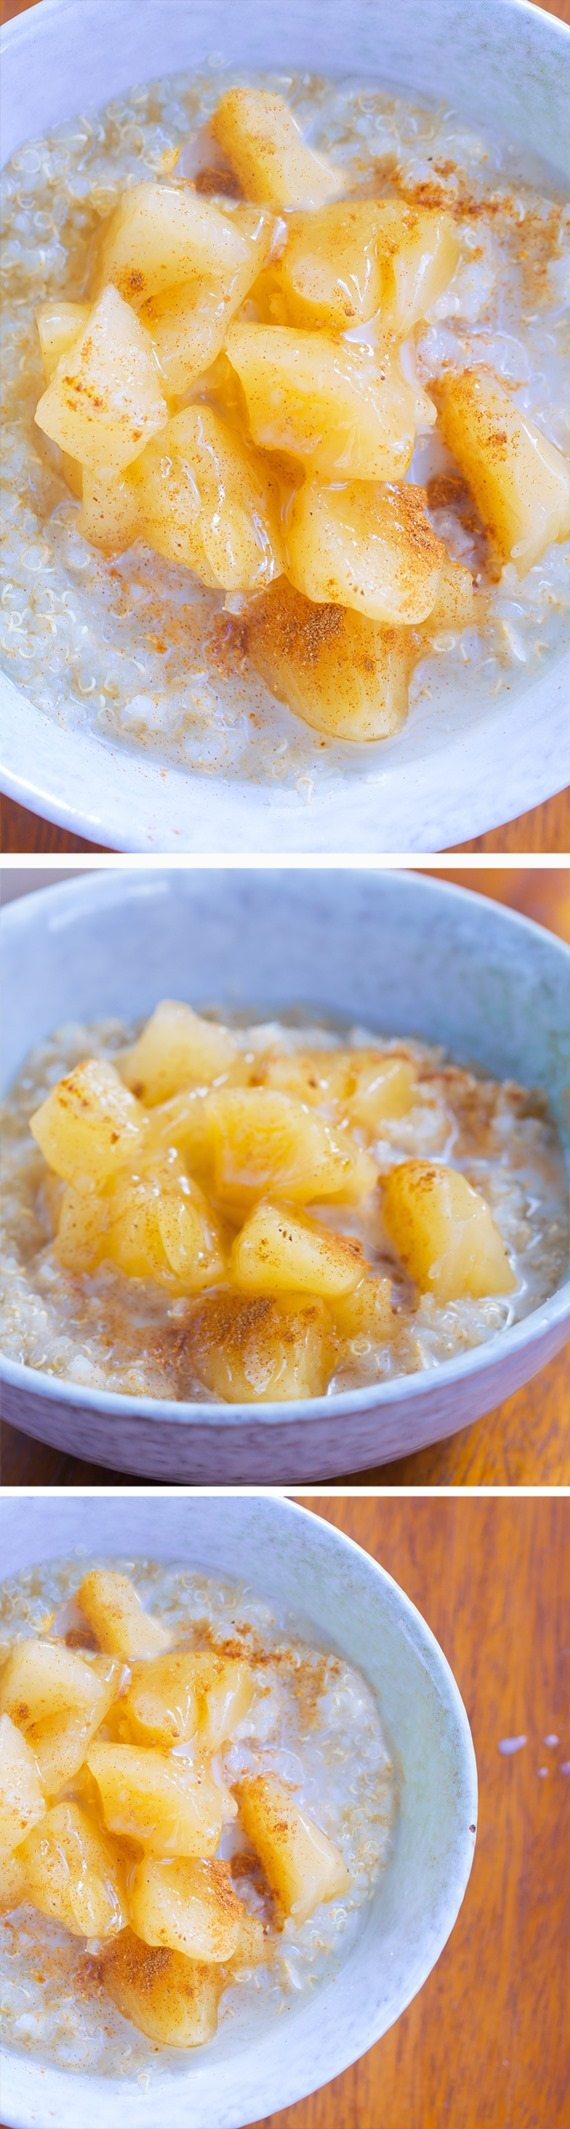 Apple Pie Breakfast Quinoa – from @choccoveredkt… 1/2 cup quinoa, 1/2 tsp cinnamon, 1 large apple, 1/4 tsp vanilla extract… Full recipe: https://chocolatecoveredkatie.com/2015/11/09/apple-quinoa-breakfast-bowls/